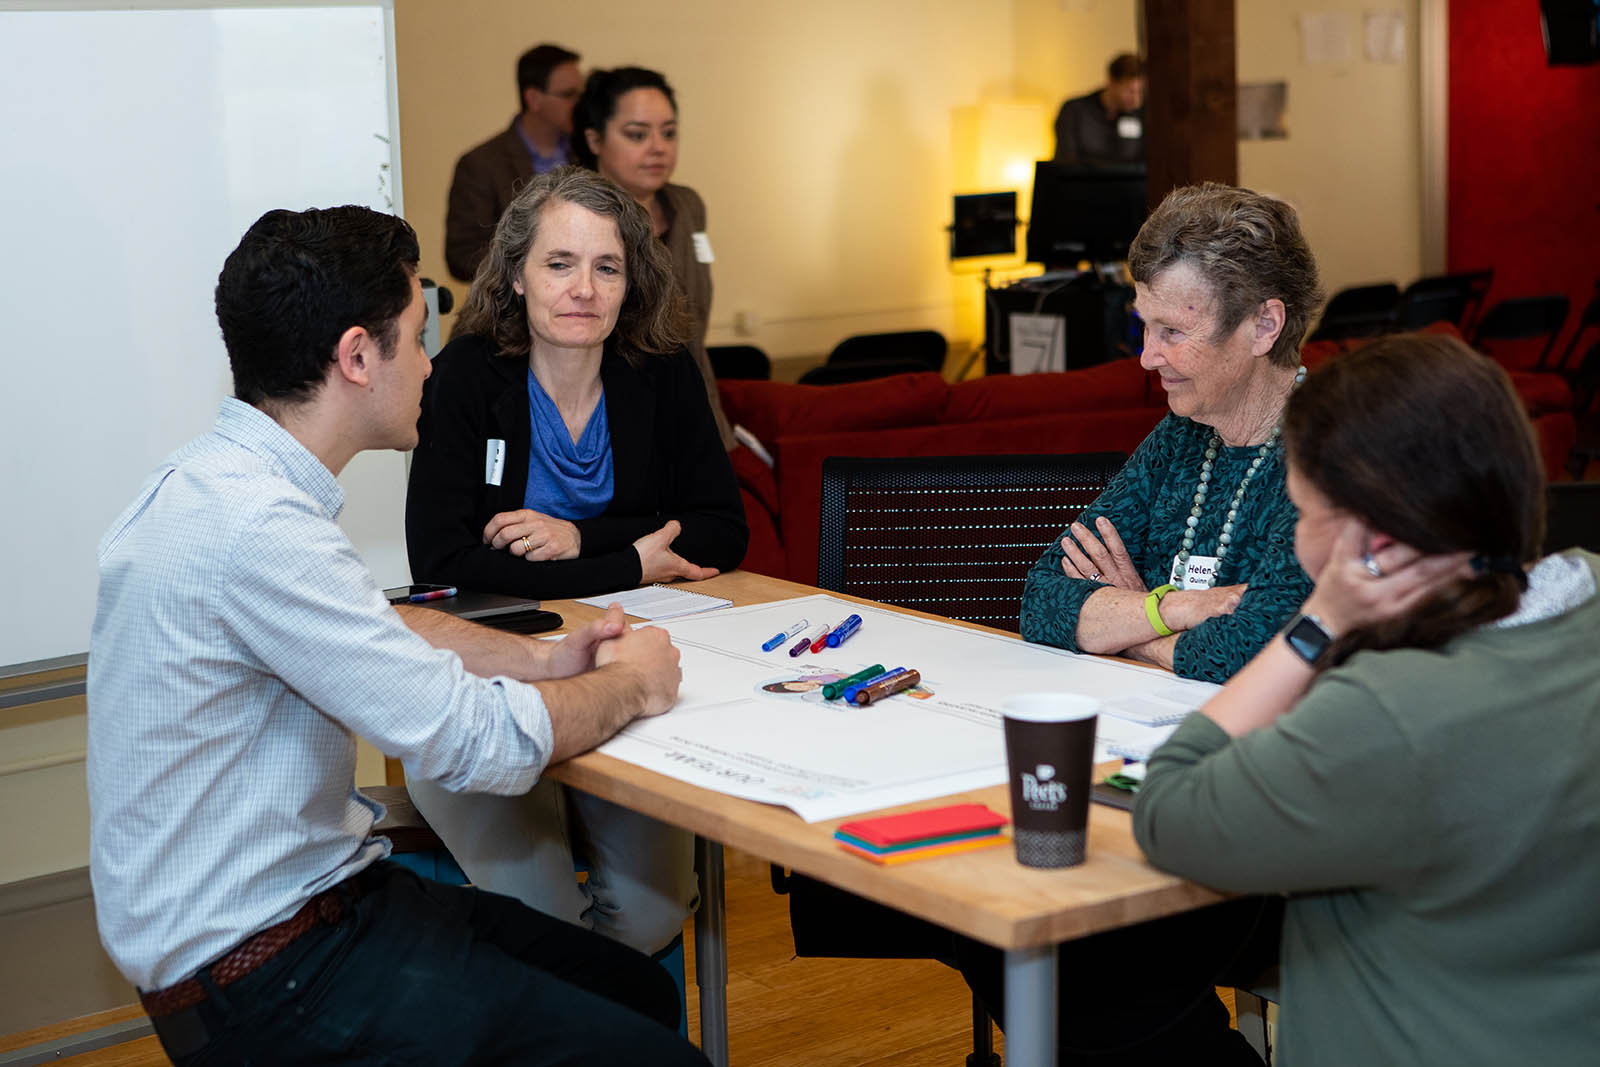 Collaborating across disciplines. Concord Consortium developer Eli Kosminsky and Director of Impact Jen Goree brainstorm with learning researcher and assessment specialist Britte Cheng and Helen Quinn, Professor Emerita of Particle Physics and Astrophysics.